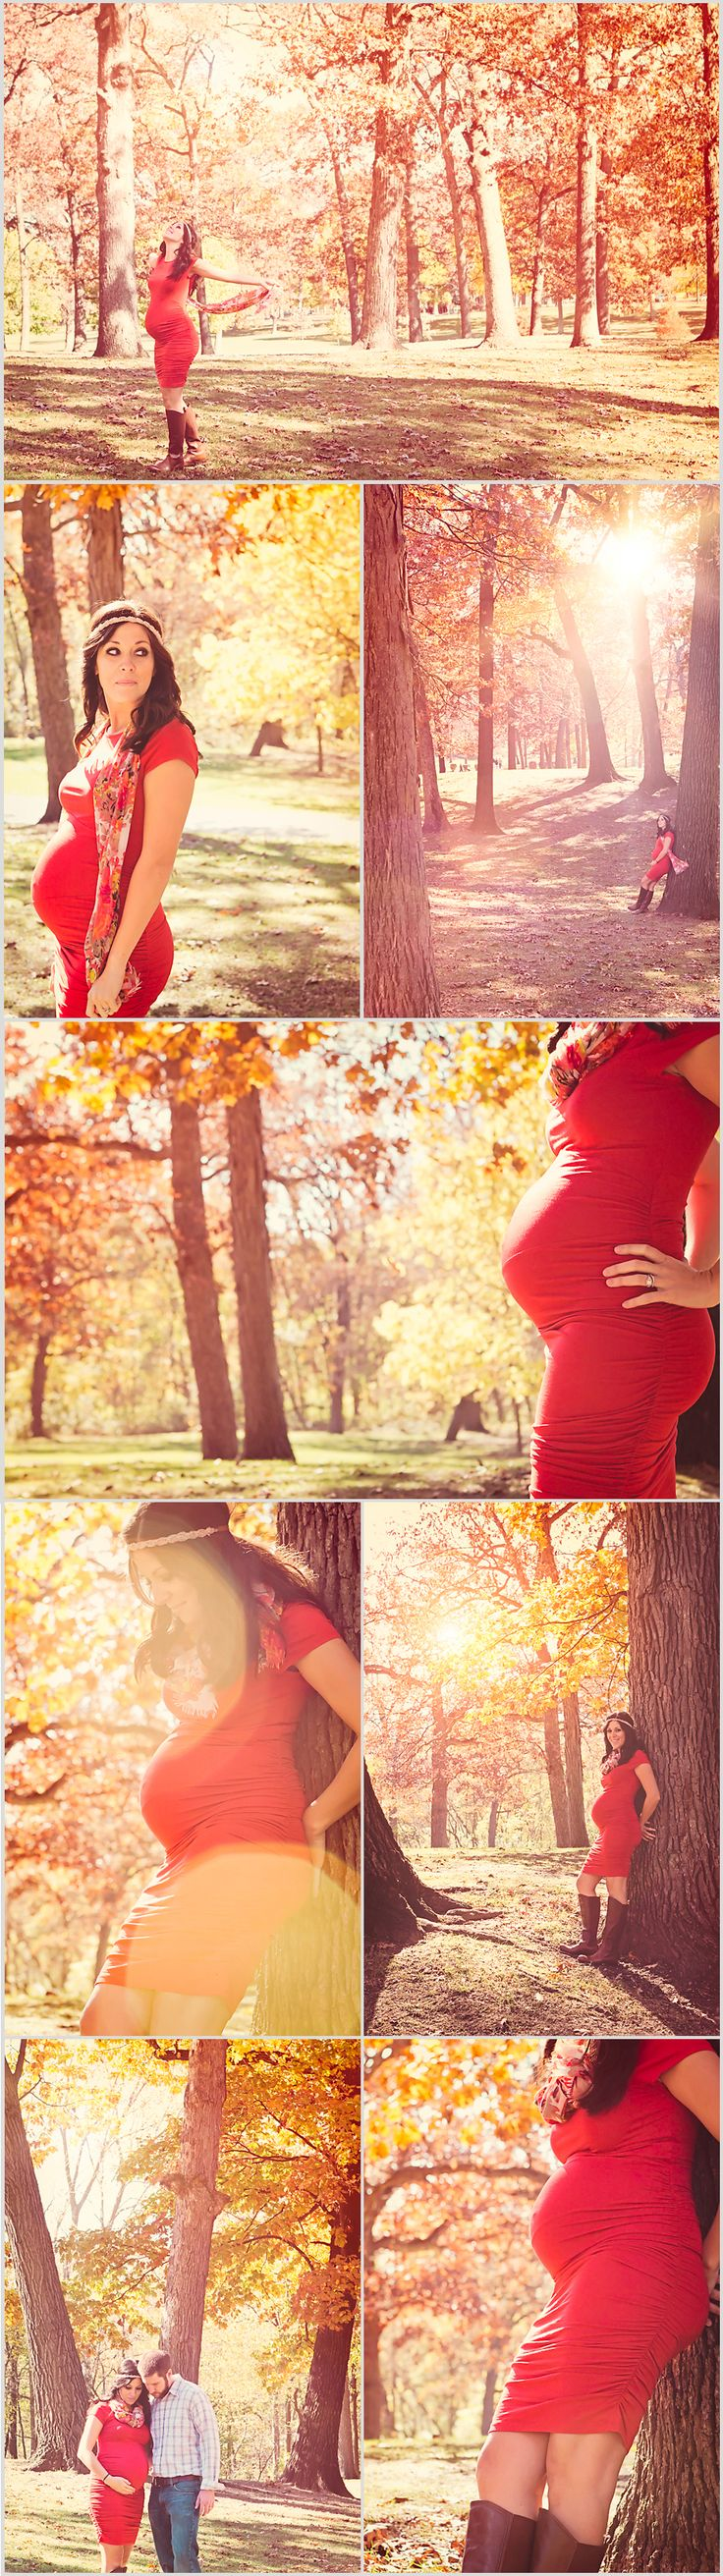 Fall Maternity Photos - Deanne Mroz Photography